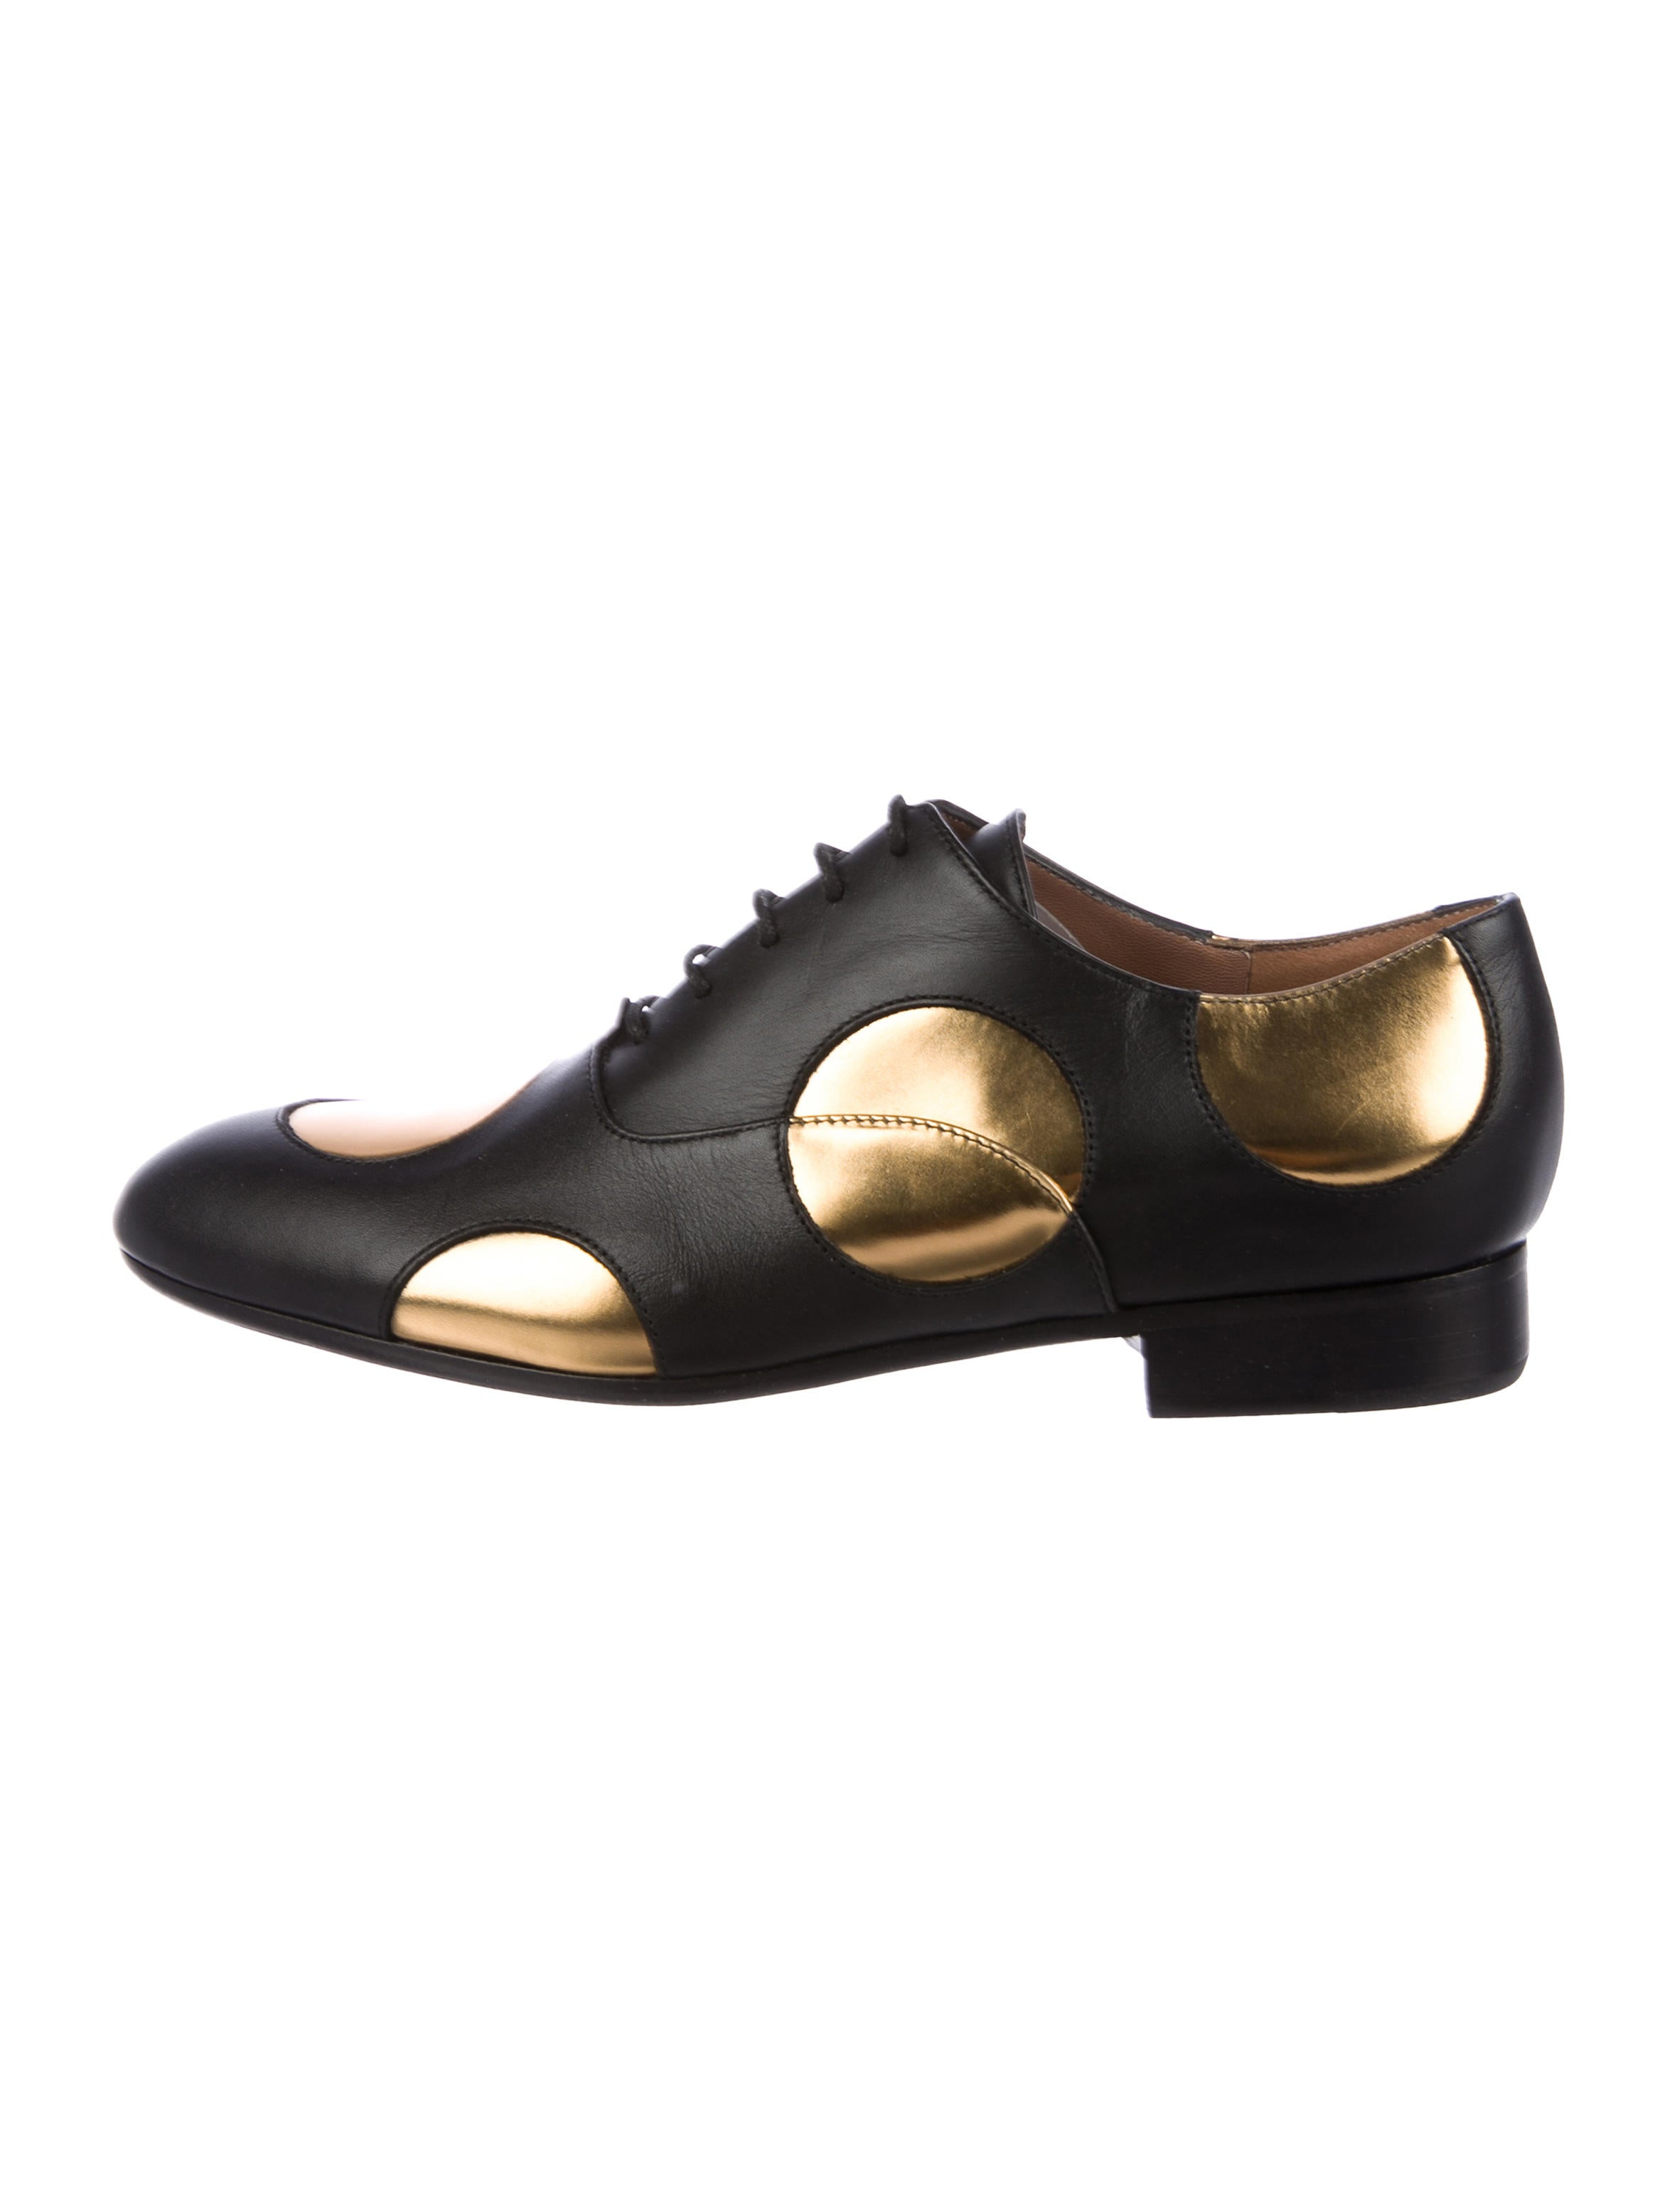 Marni Leather Round-Toe Oxfords free shipping original ikZMm